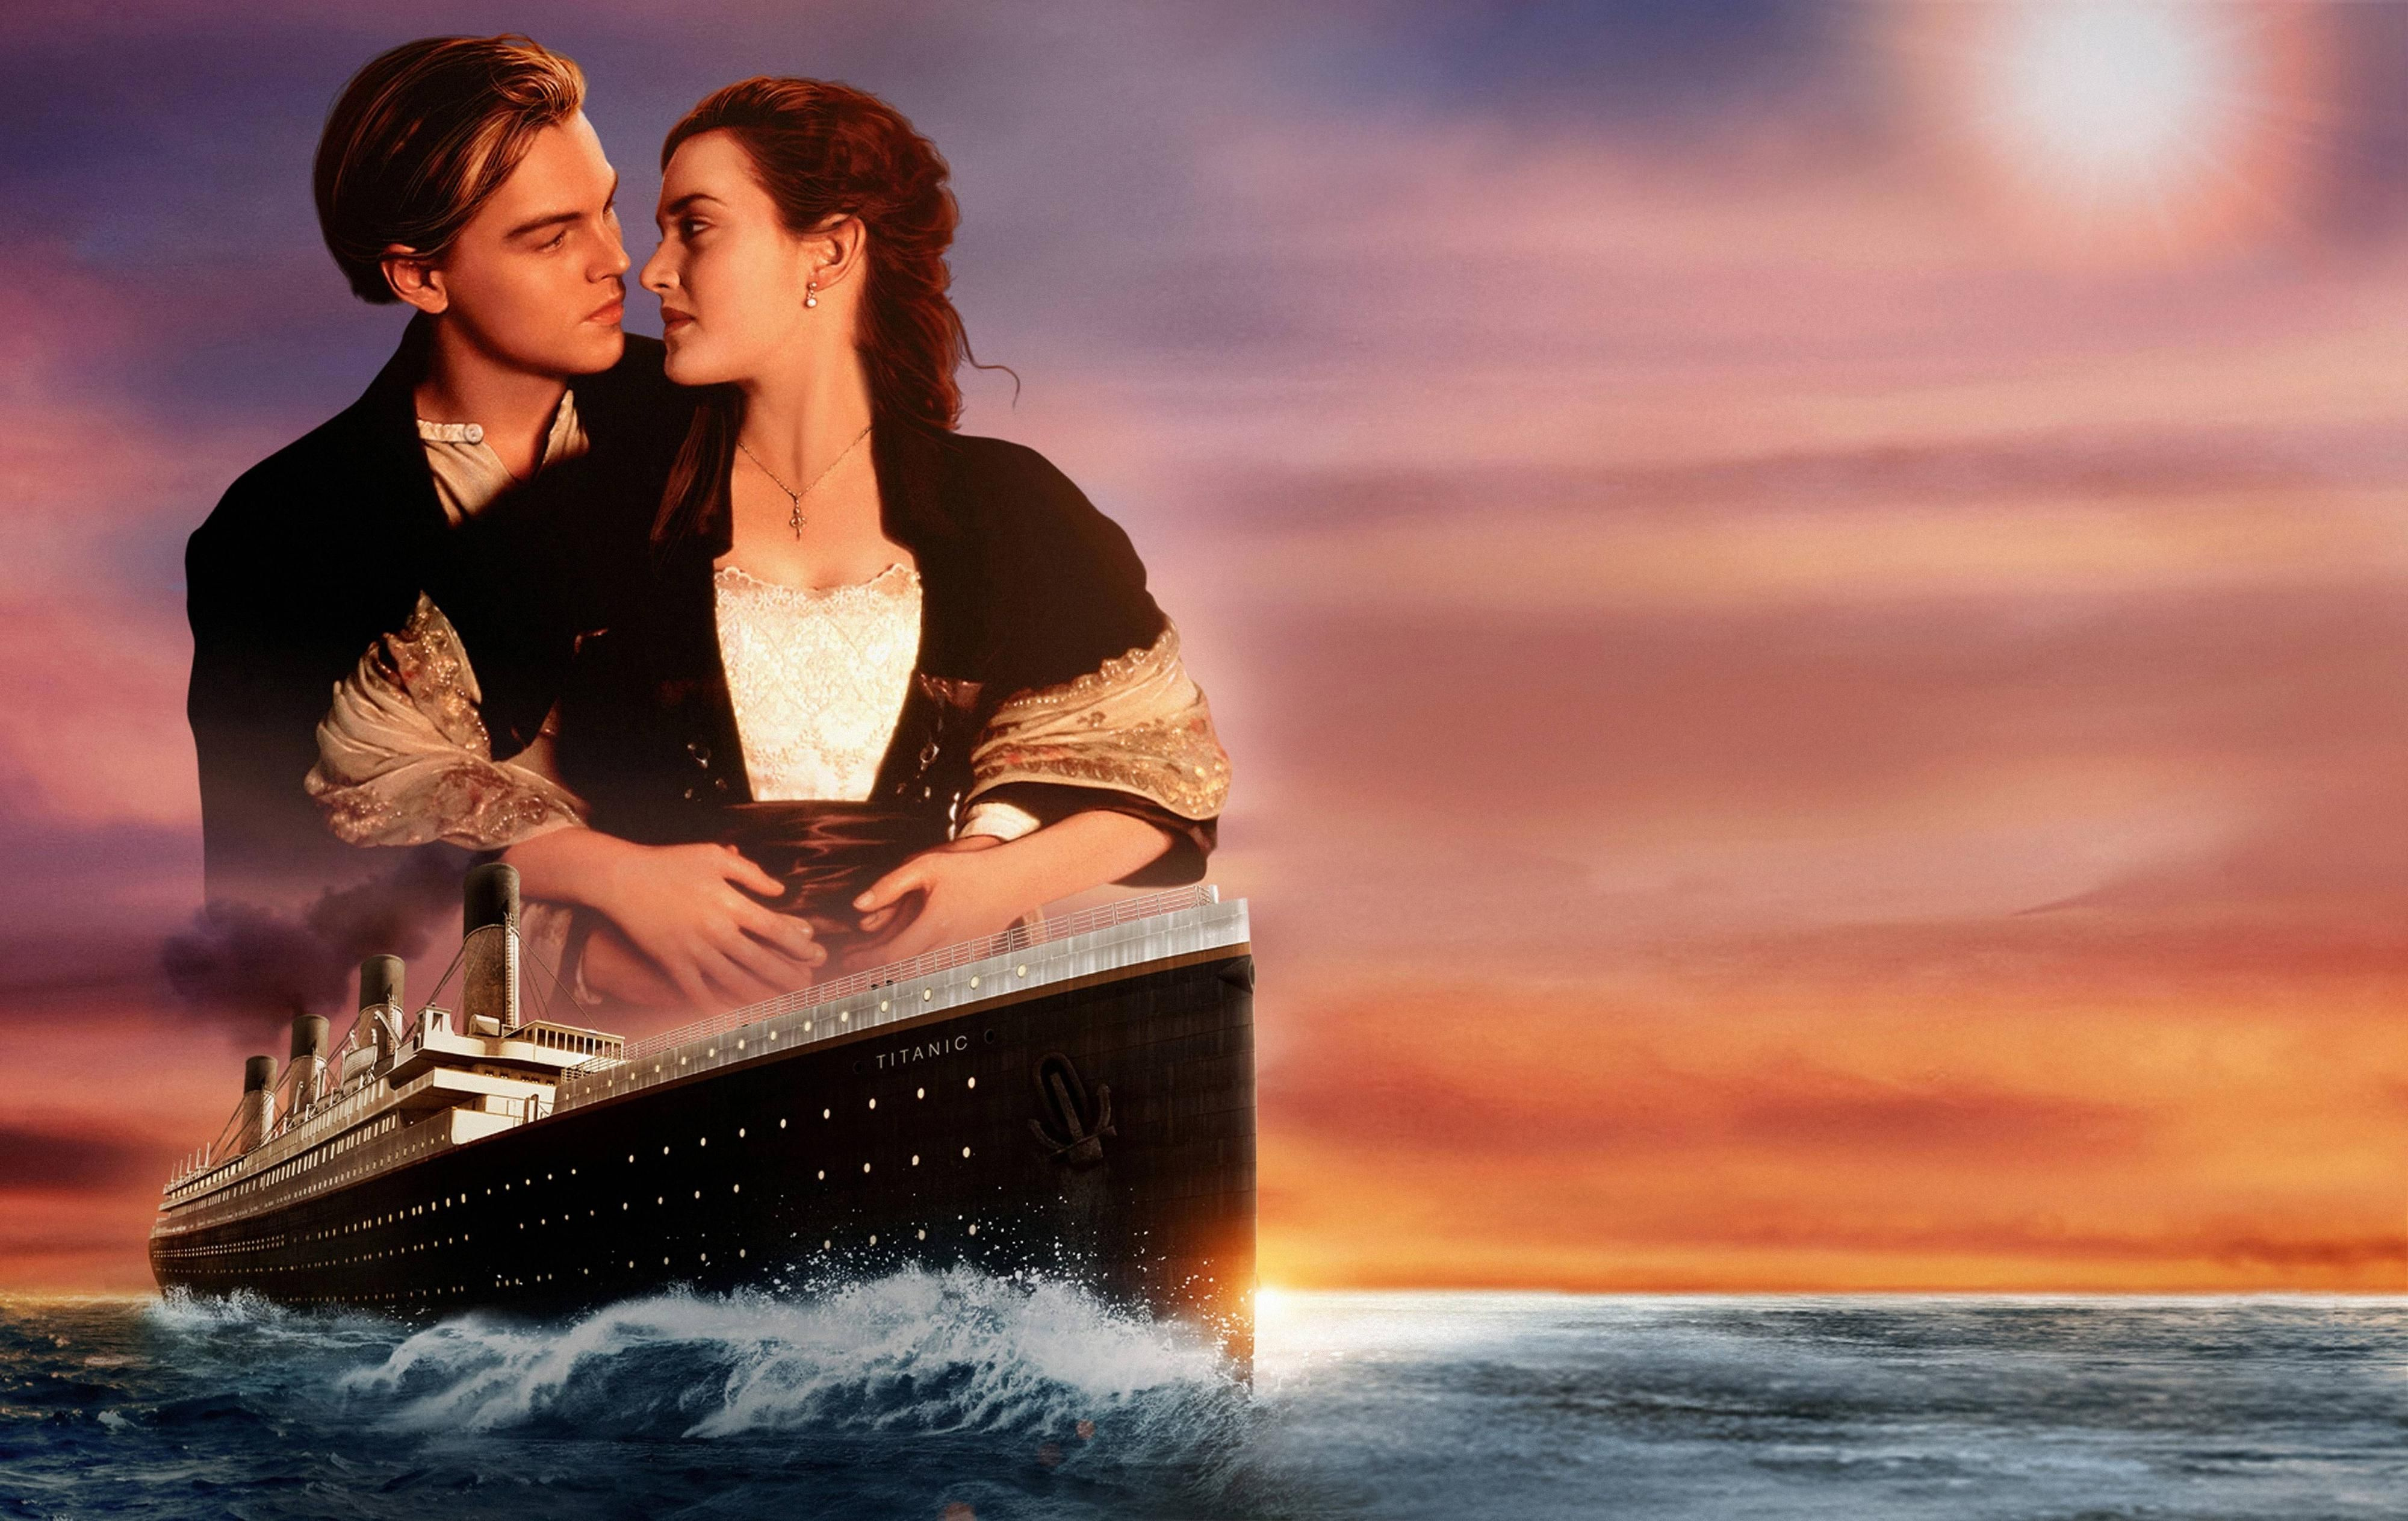 Movie Posters 1997: Titanic Movie Poster(1997 Film) HD Wallpaper From